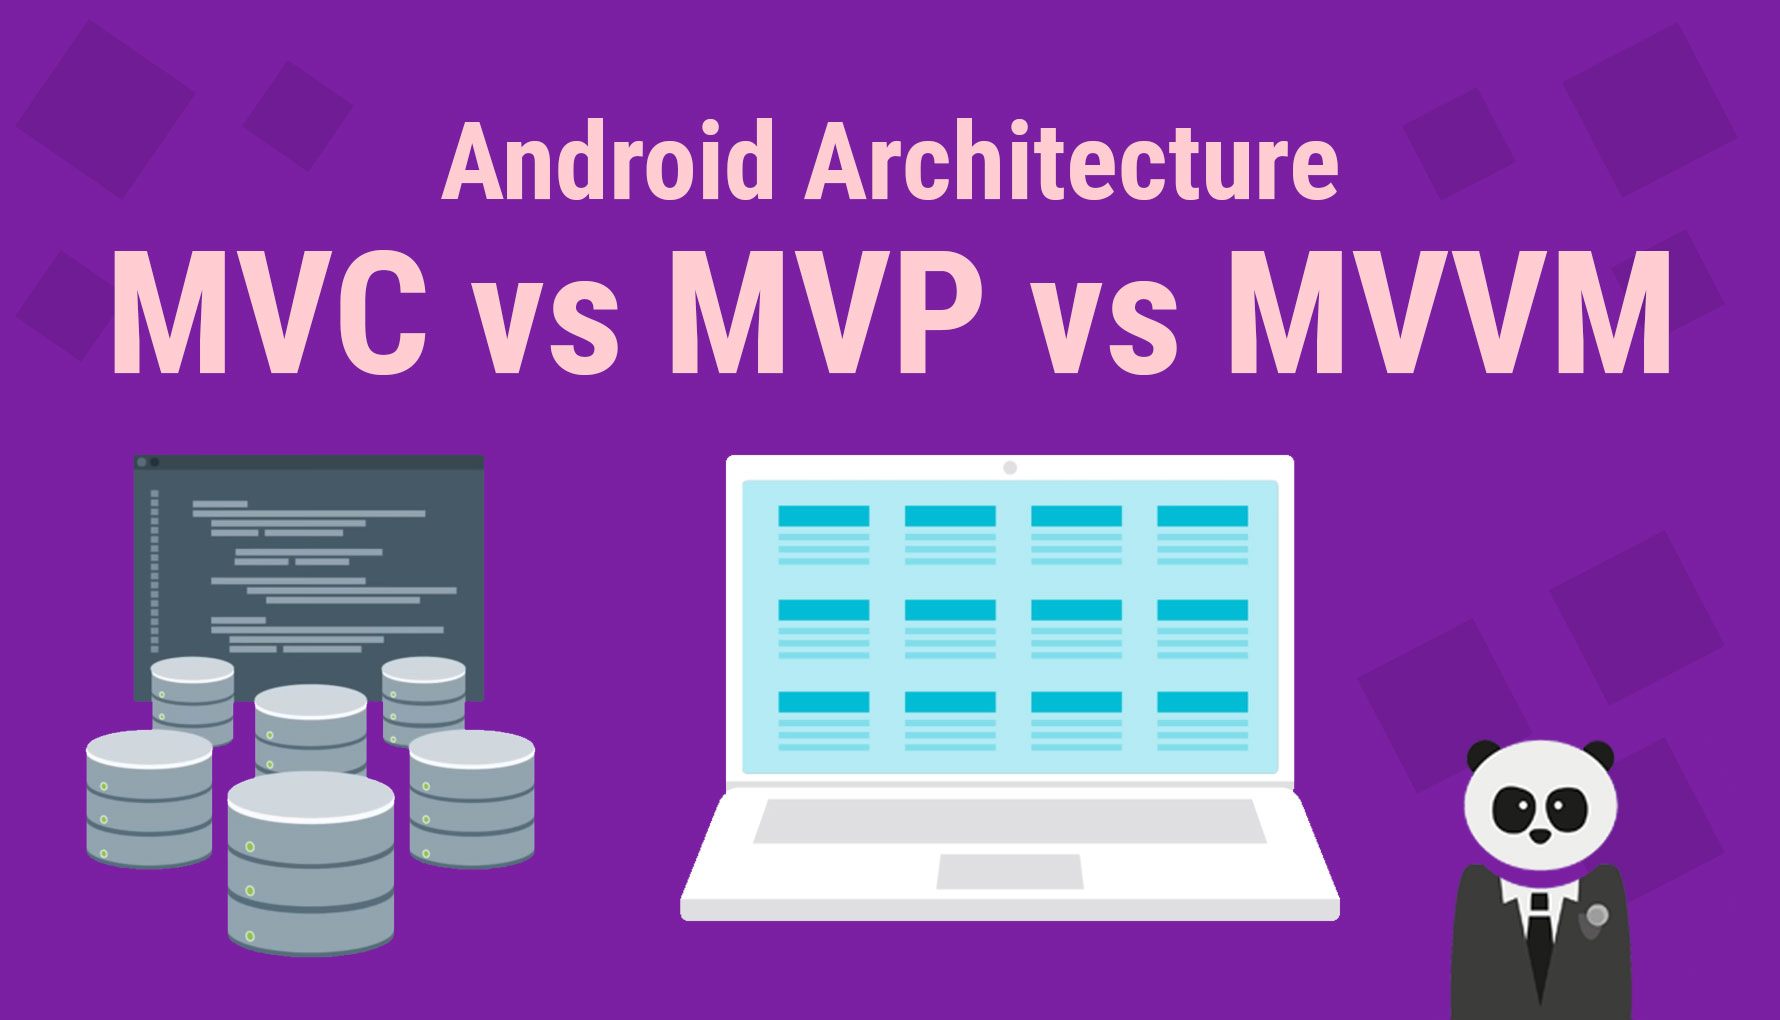 Android Architecture: MVC vs MVP vs MVVM